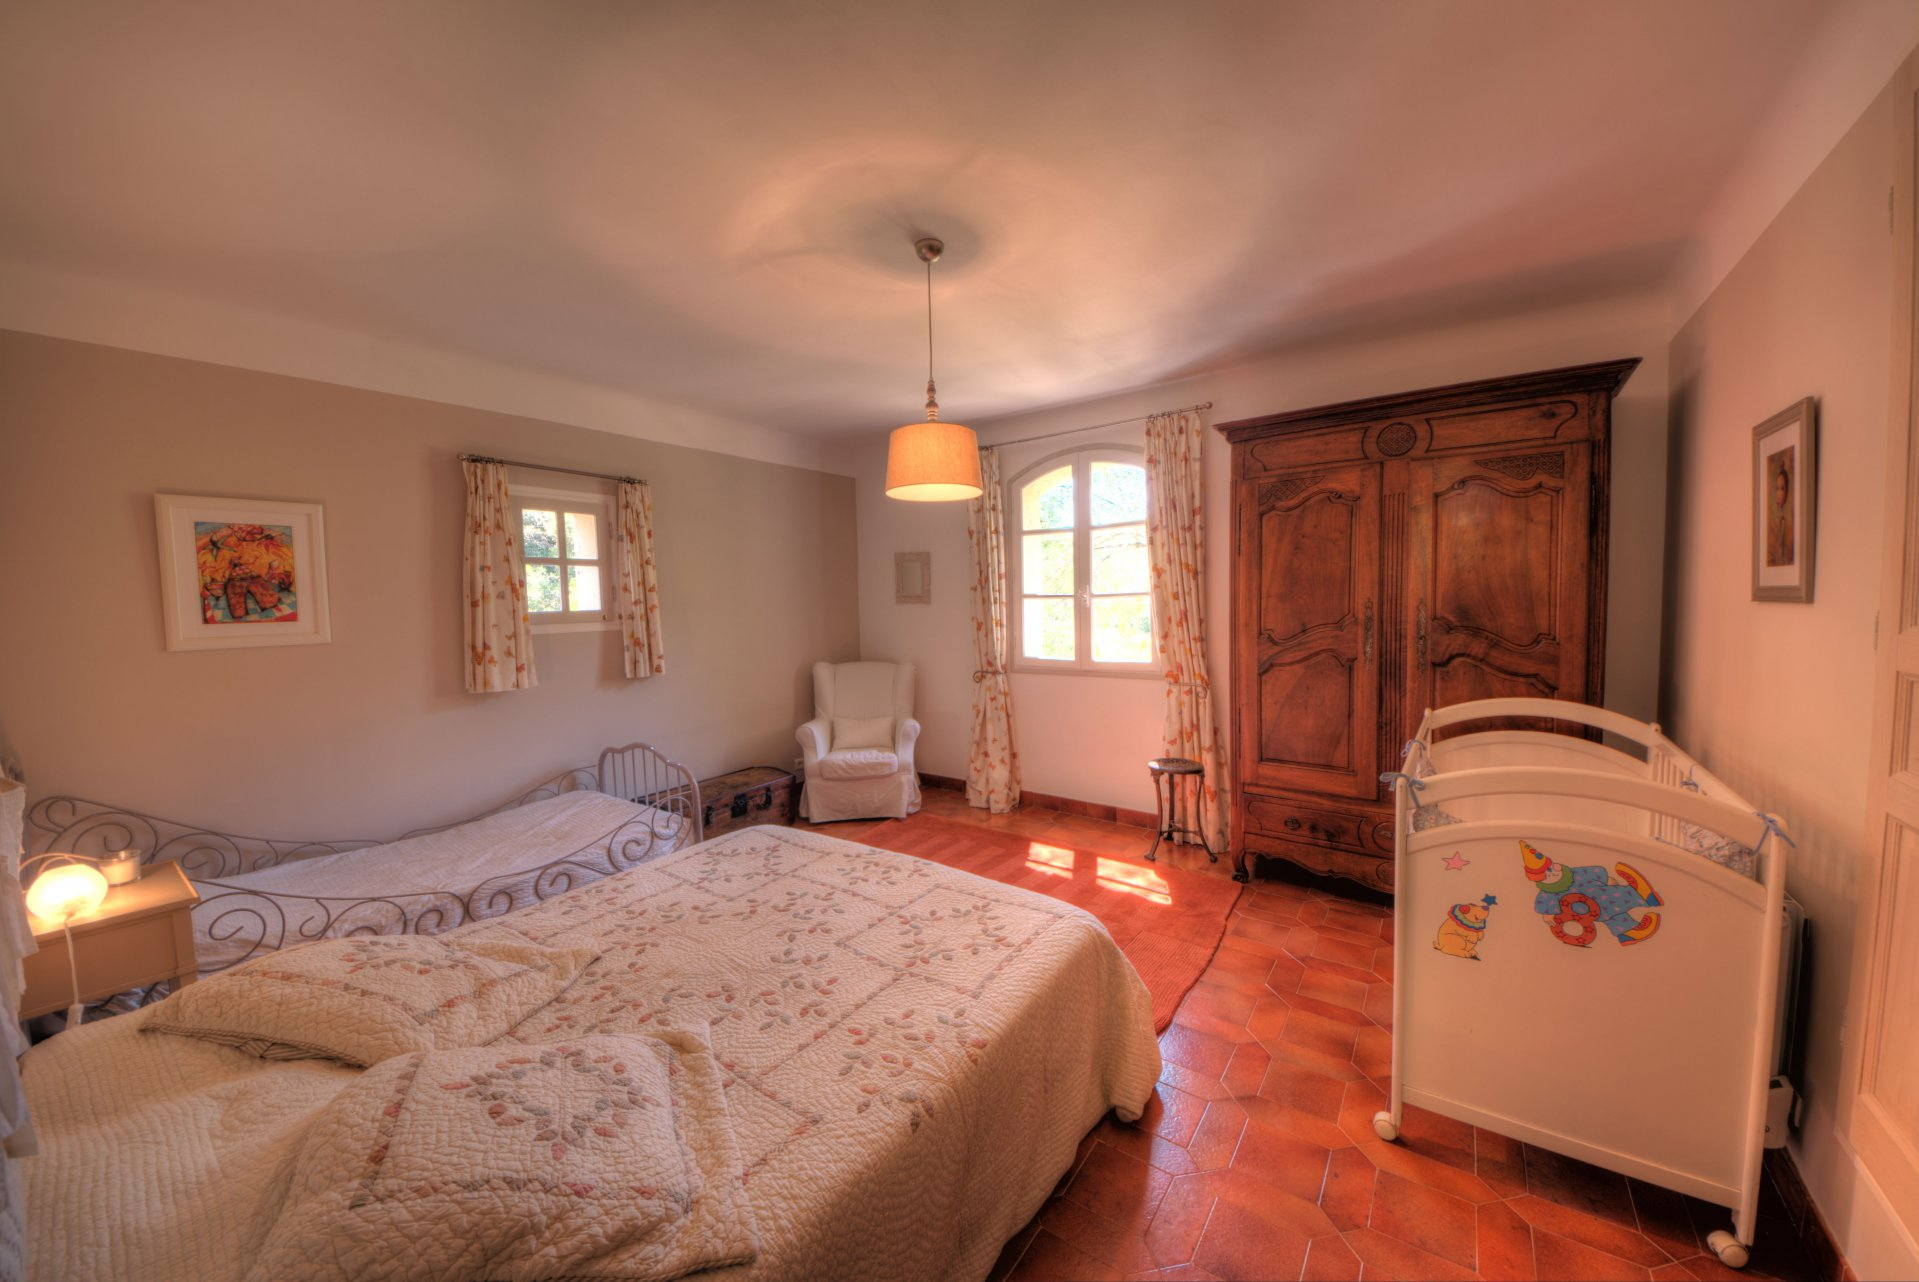 Bedroom 2 of the villa in the heart of the Thoronet